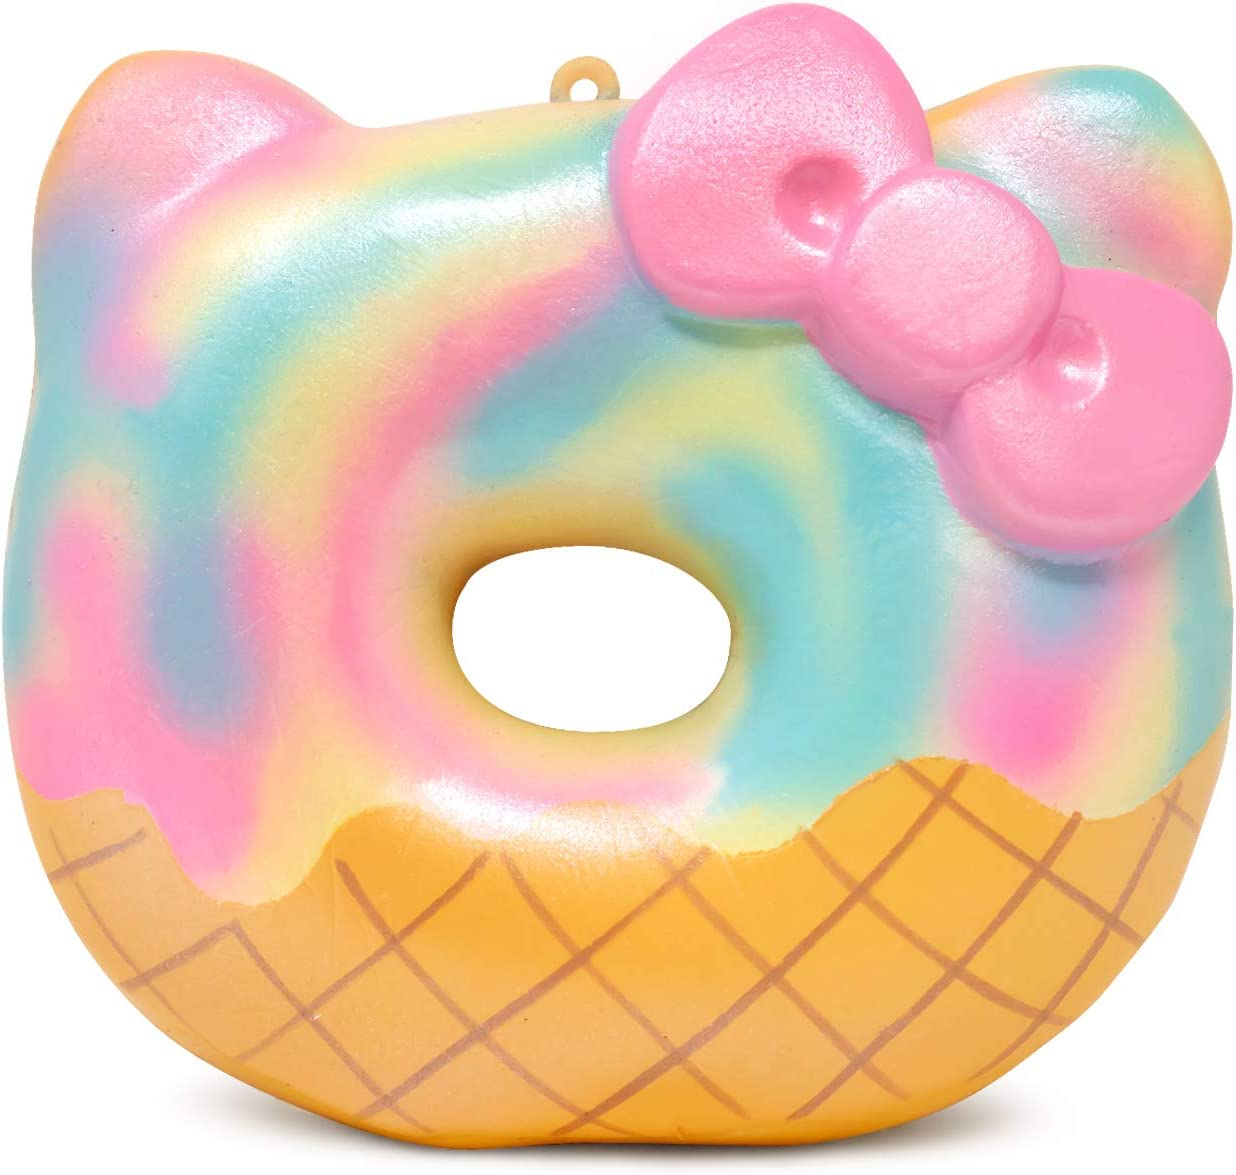 Sanrio Hello Kitty Ice Cream Donut Slow Rising Squishy Toy Keychain (Sherbet) for Party Favors, Stress Balls, Birthday Gift Boxes, Kawaii Squishies for Kids, Girls, Boys, Adults